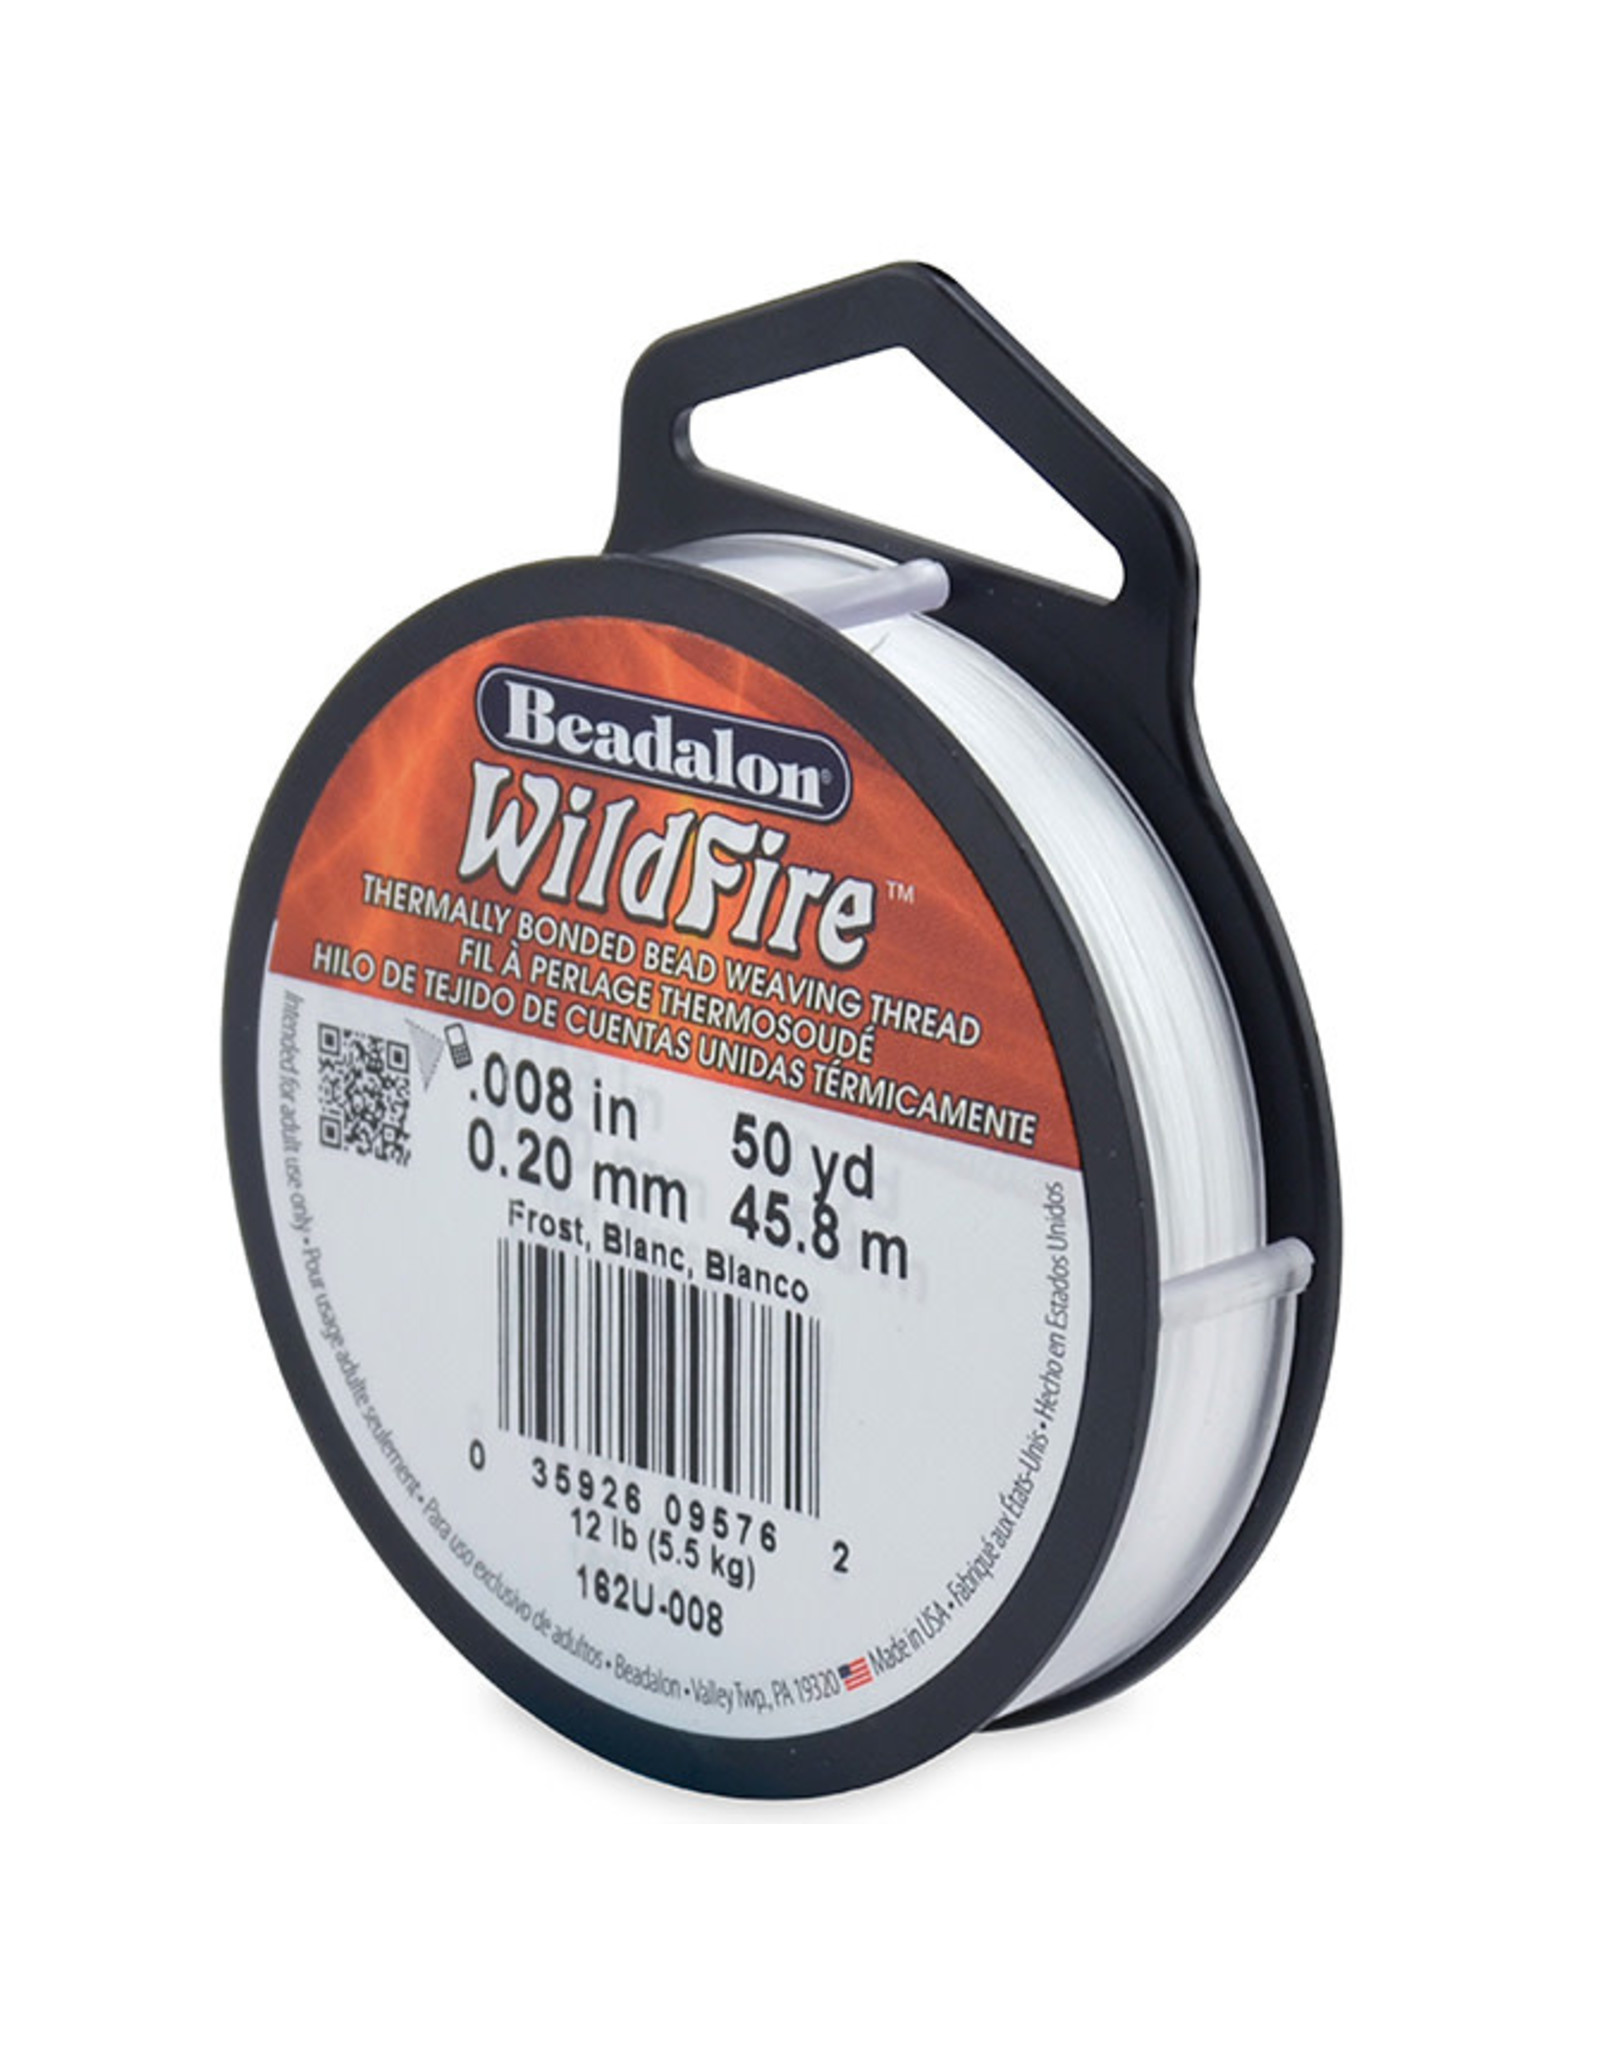 Beadalon Wildfire 0,2mm 45,8m